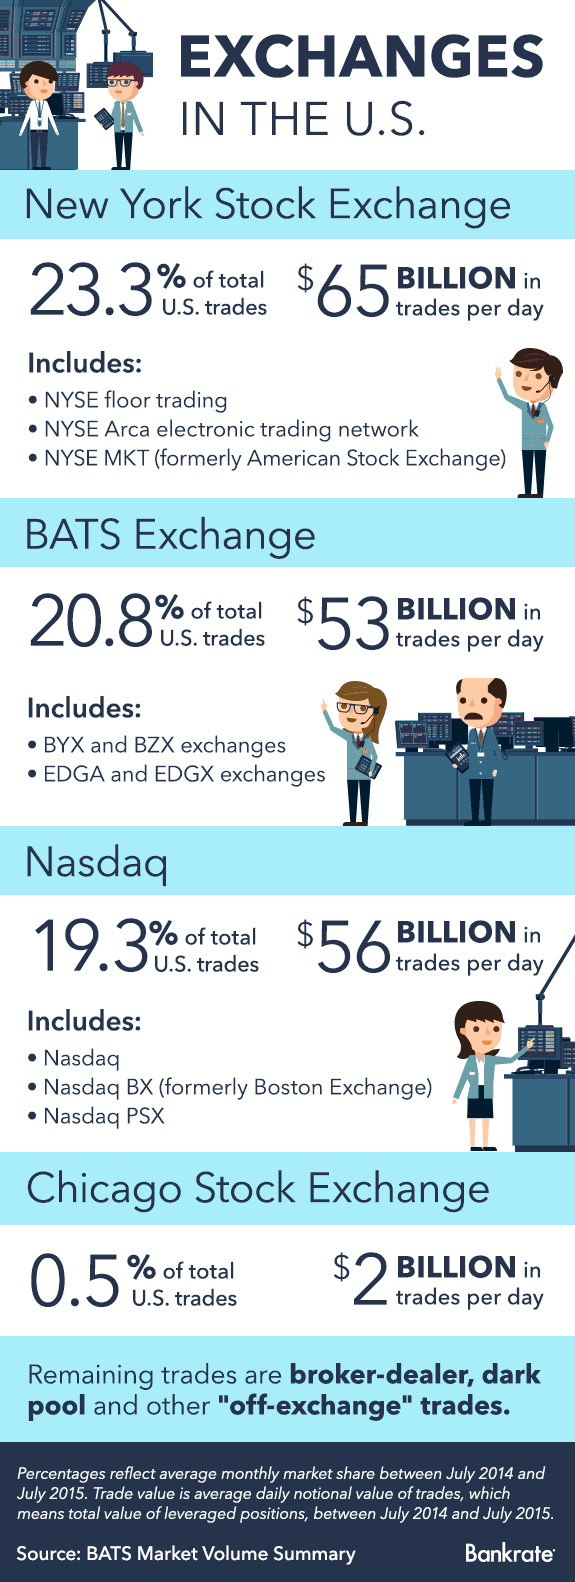 Exchanges in the U.S. © Bigstock